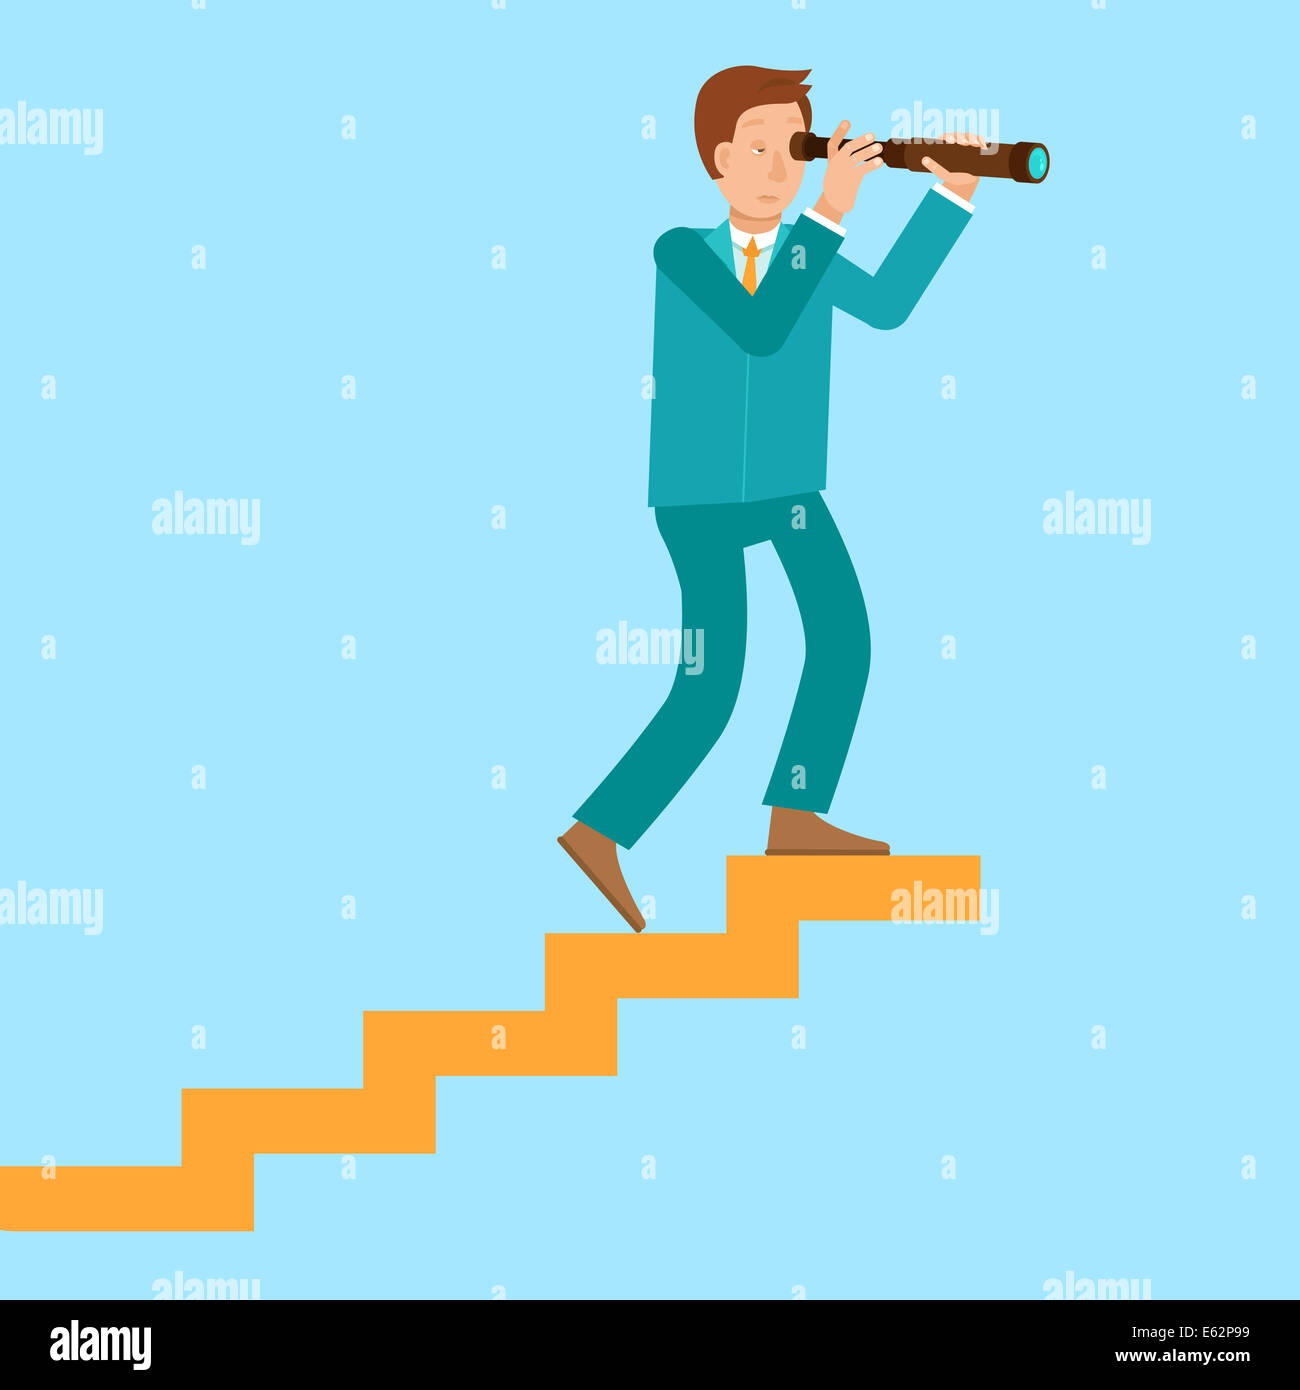 Career Concept In Flat Style Cartoon Man Climbing The